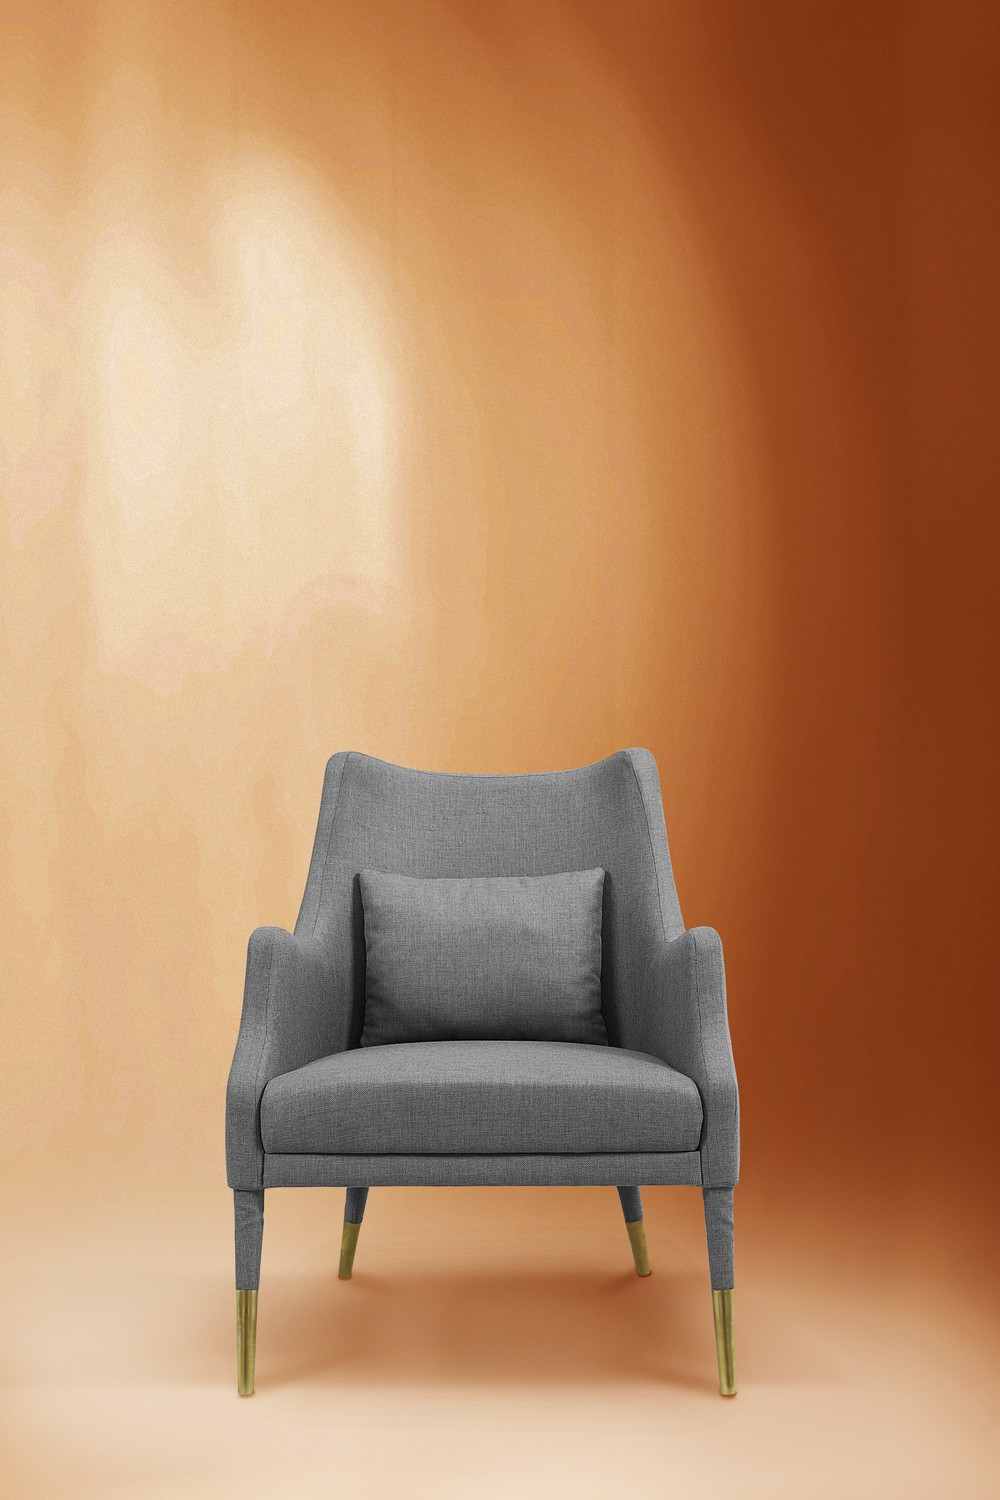 25 Contemporary Office Chairs for an Upgraded Aesthetic! 23